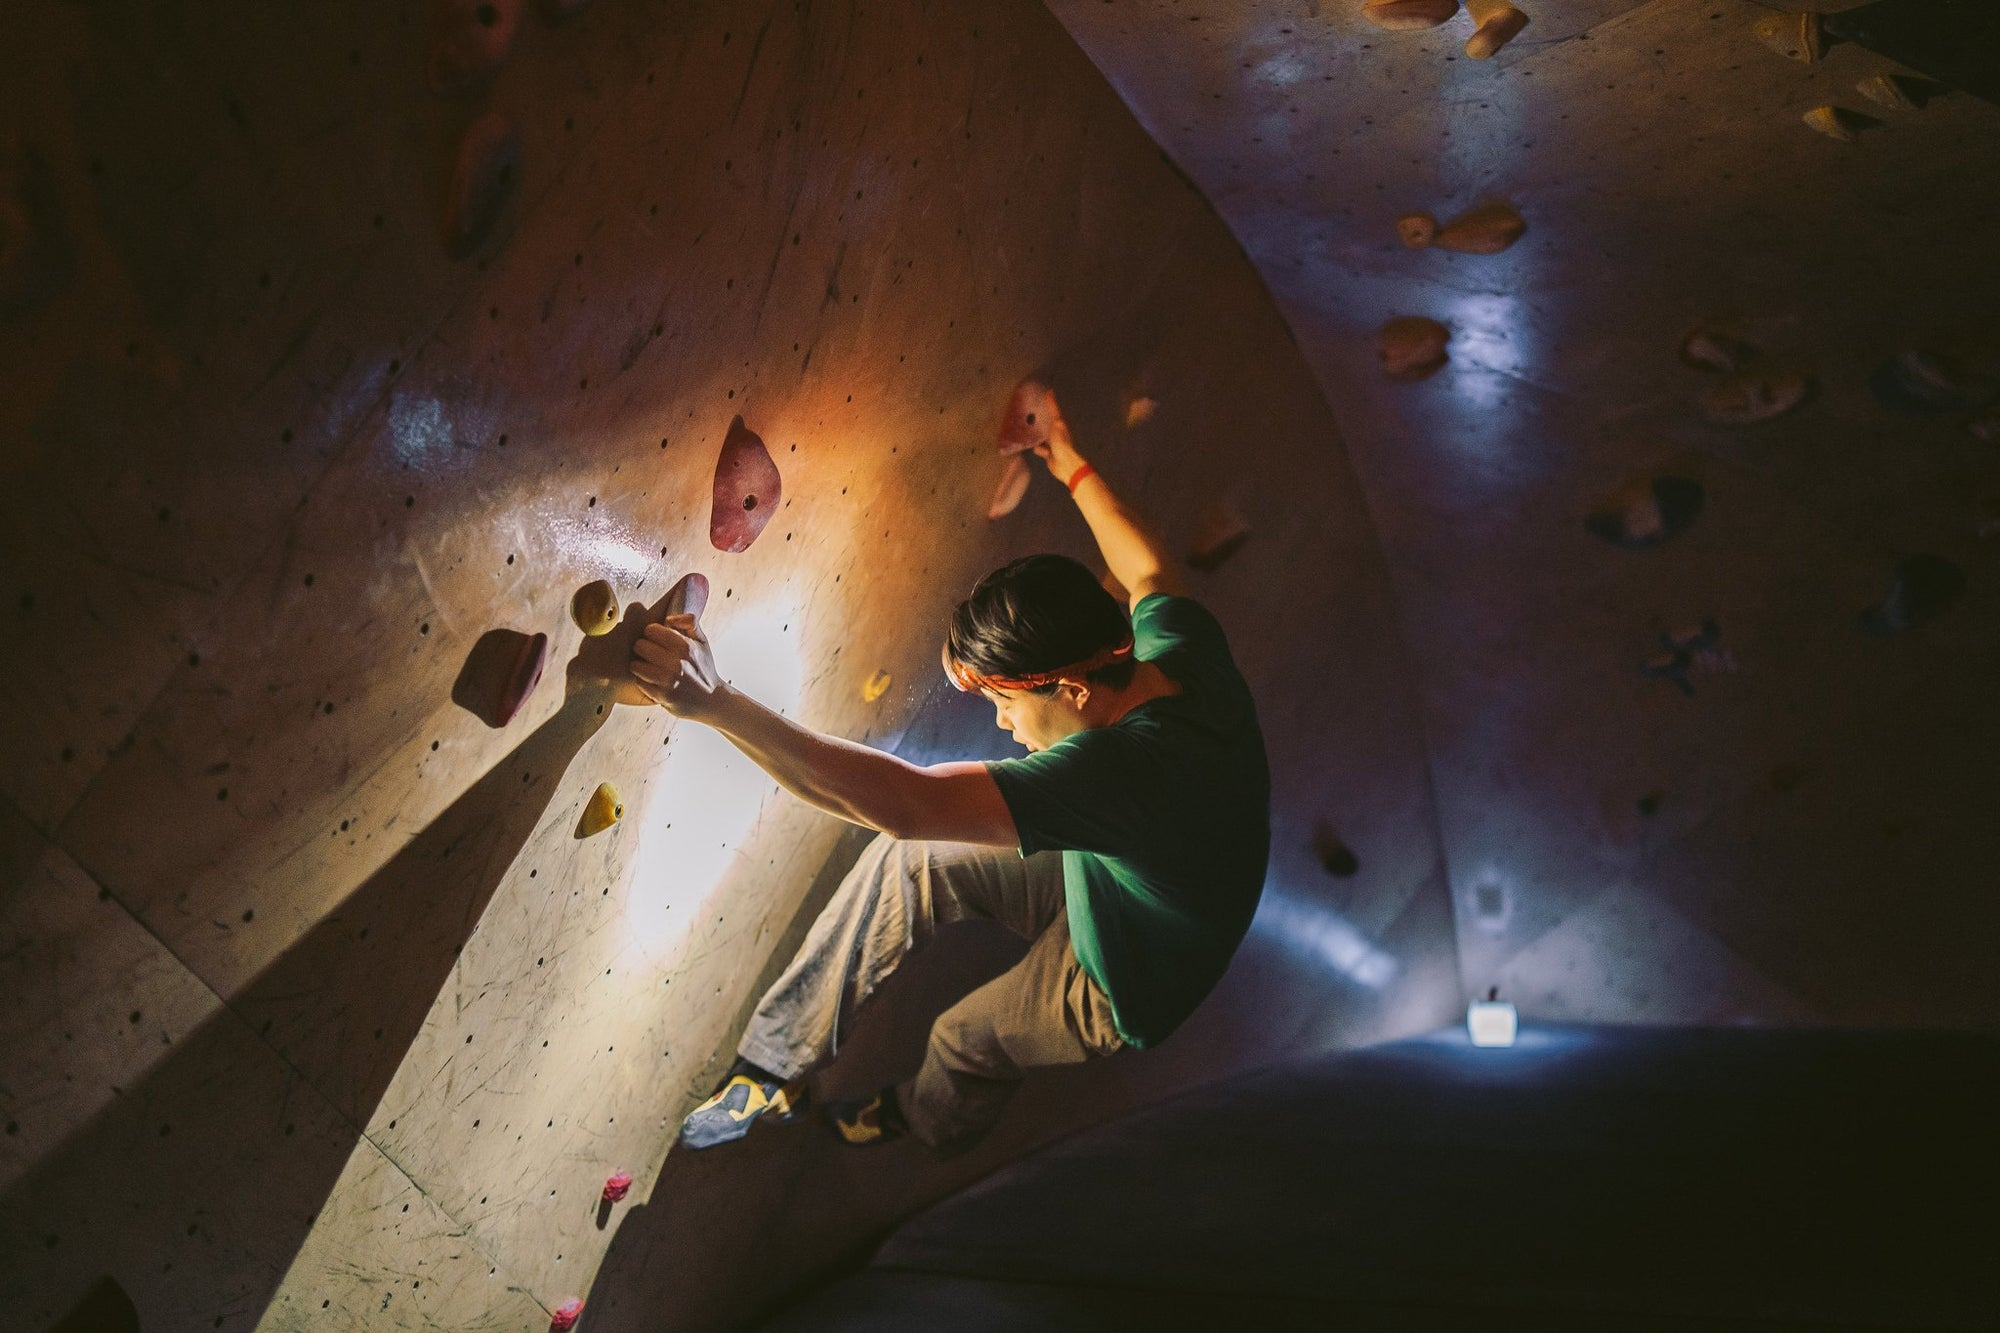 Brooklyn Boulders Climbs the Night with LuminAID-LuminAID